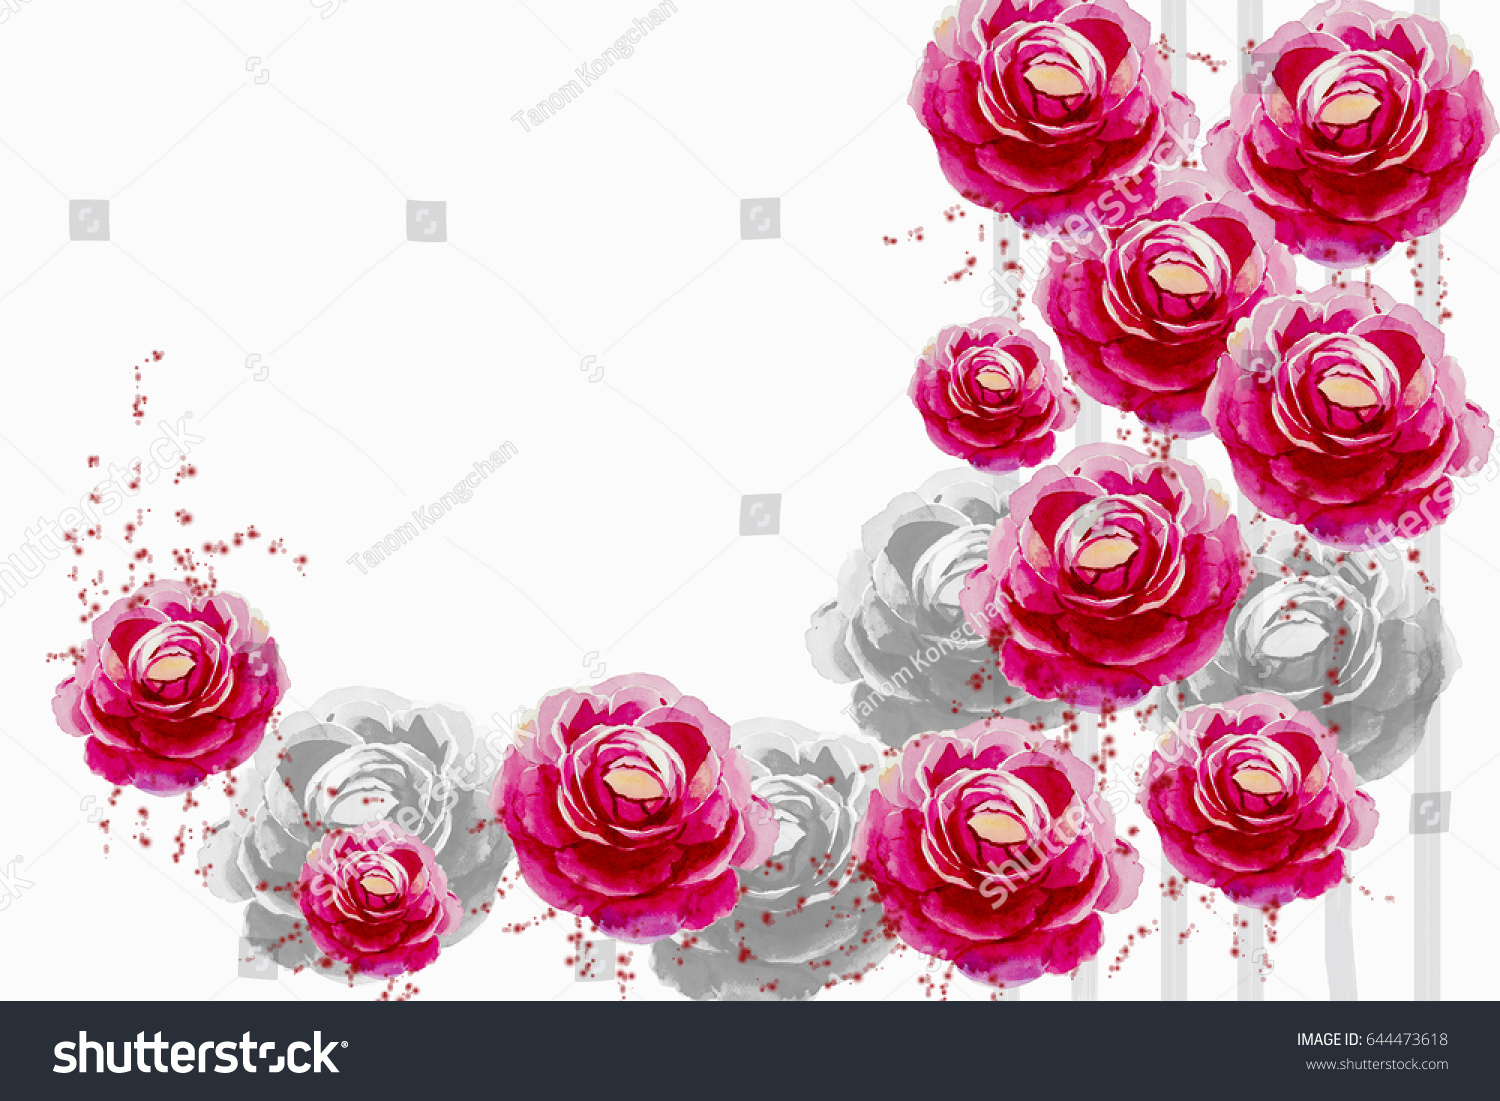 Royalty Free Stock Illustration Of Watercolor Painting Pink Color